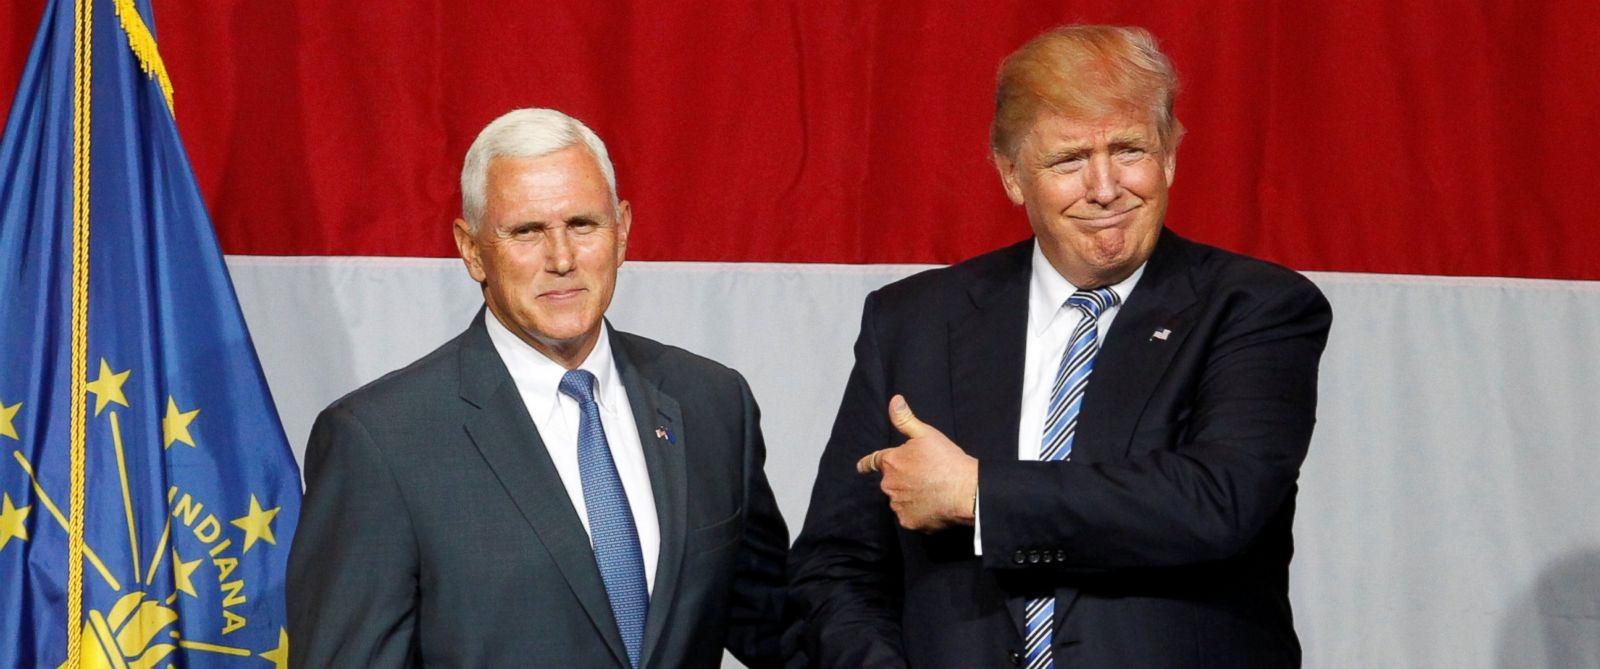 Donald Trump Announces Indiana Governor Mike Pence As VP Running Mate Featured